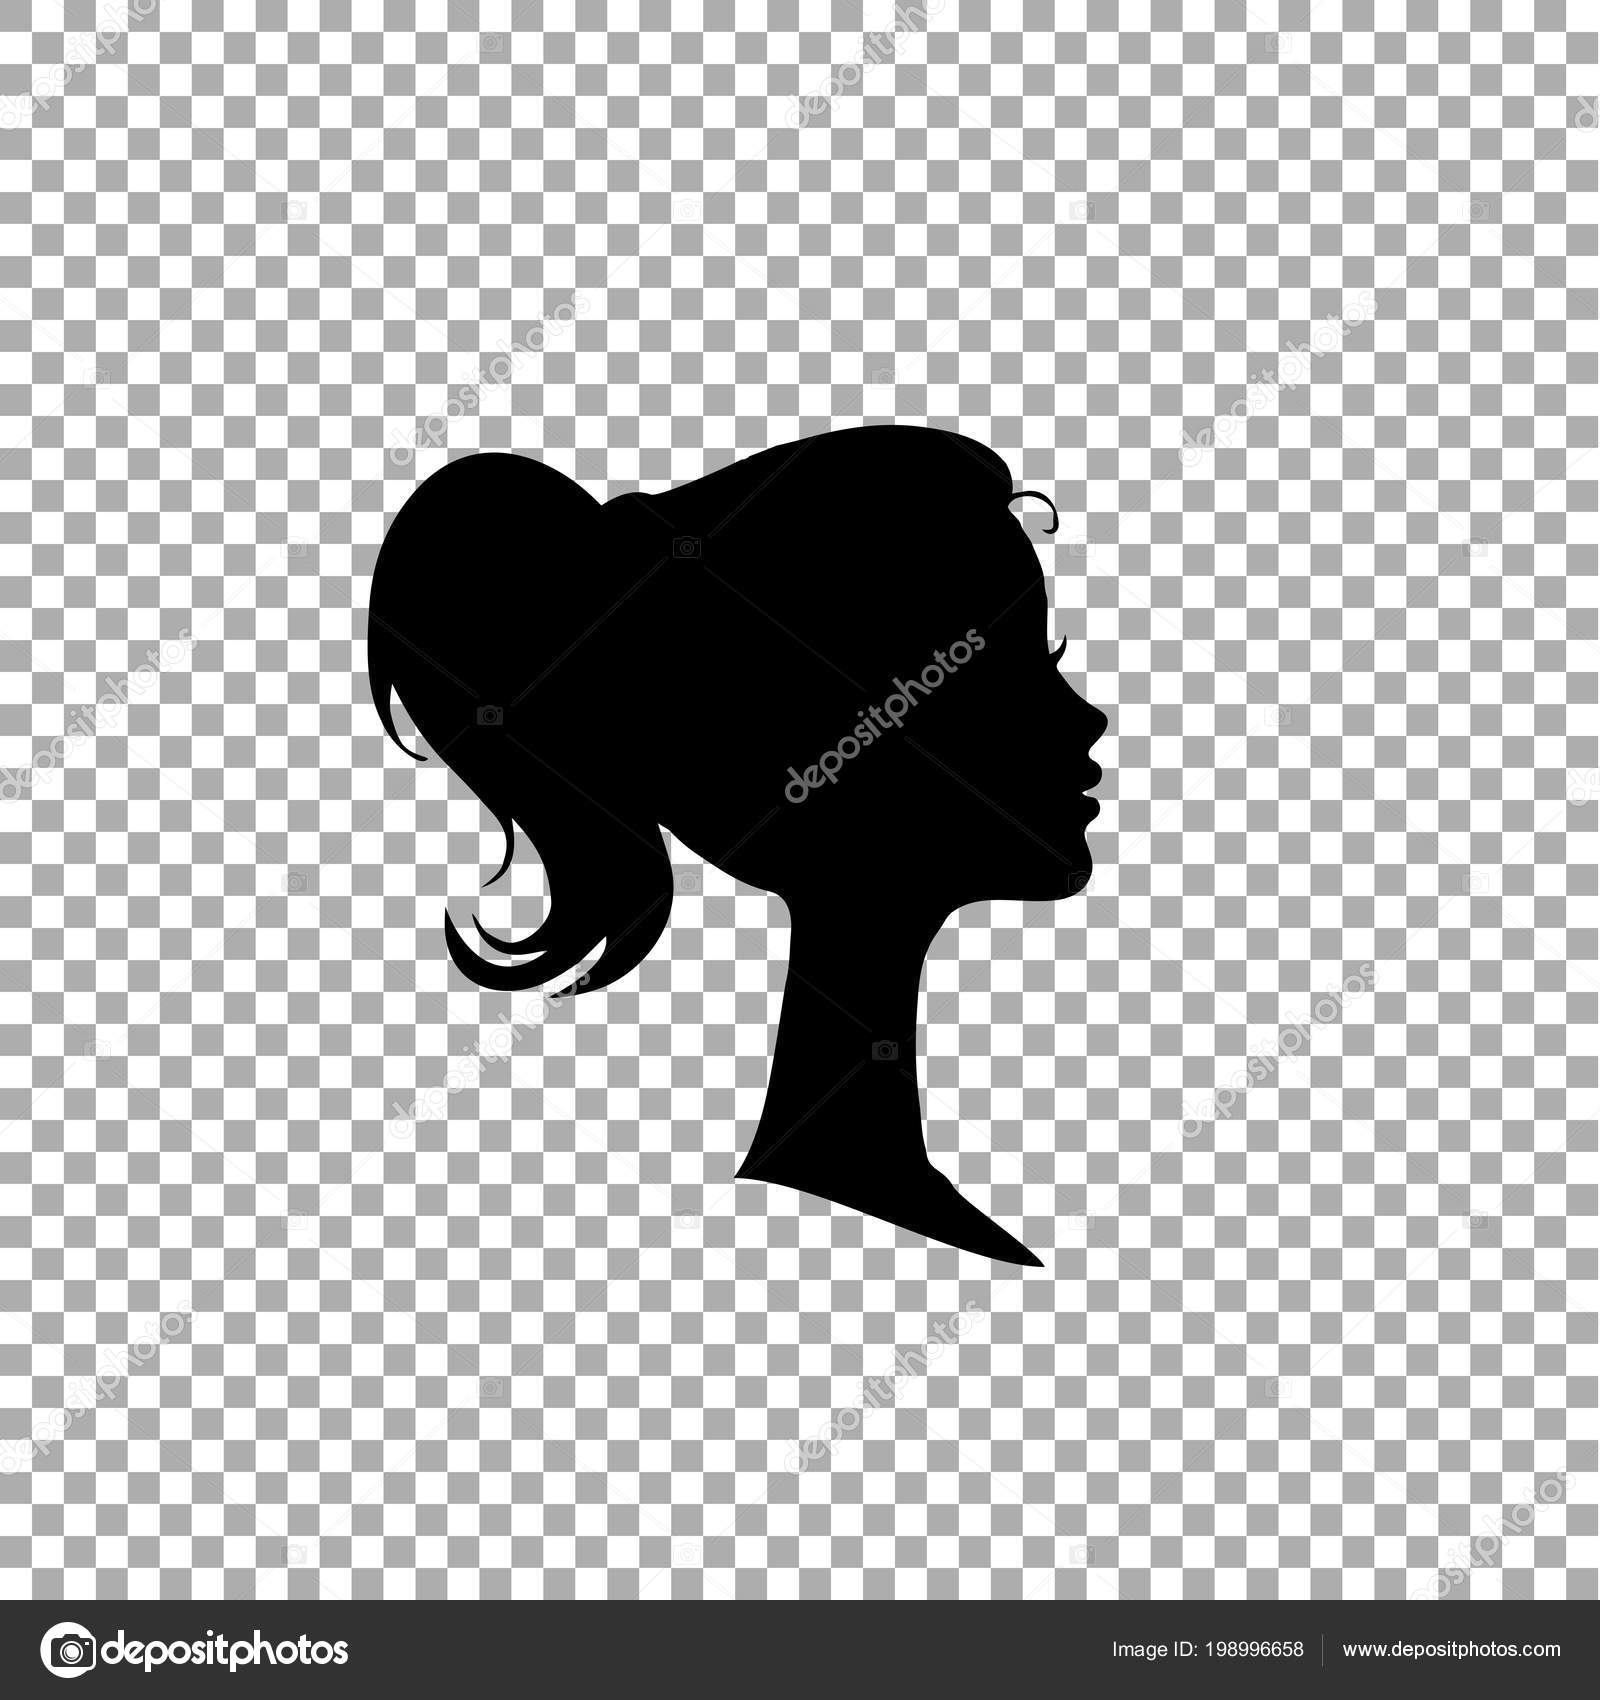 Black profile silhouette of young girl or woman head face profile vignette hand drawn vector illustration isolated on transparent background